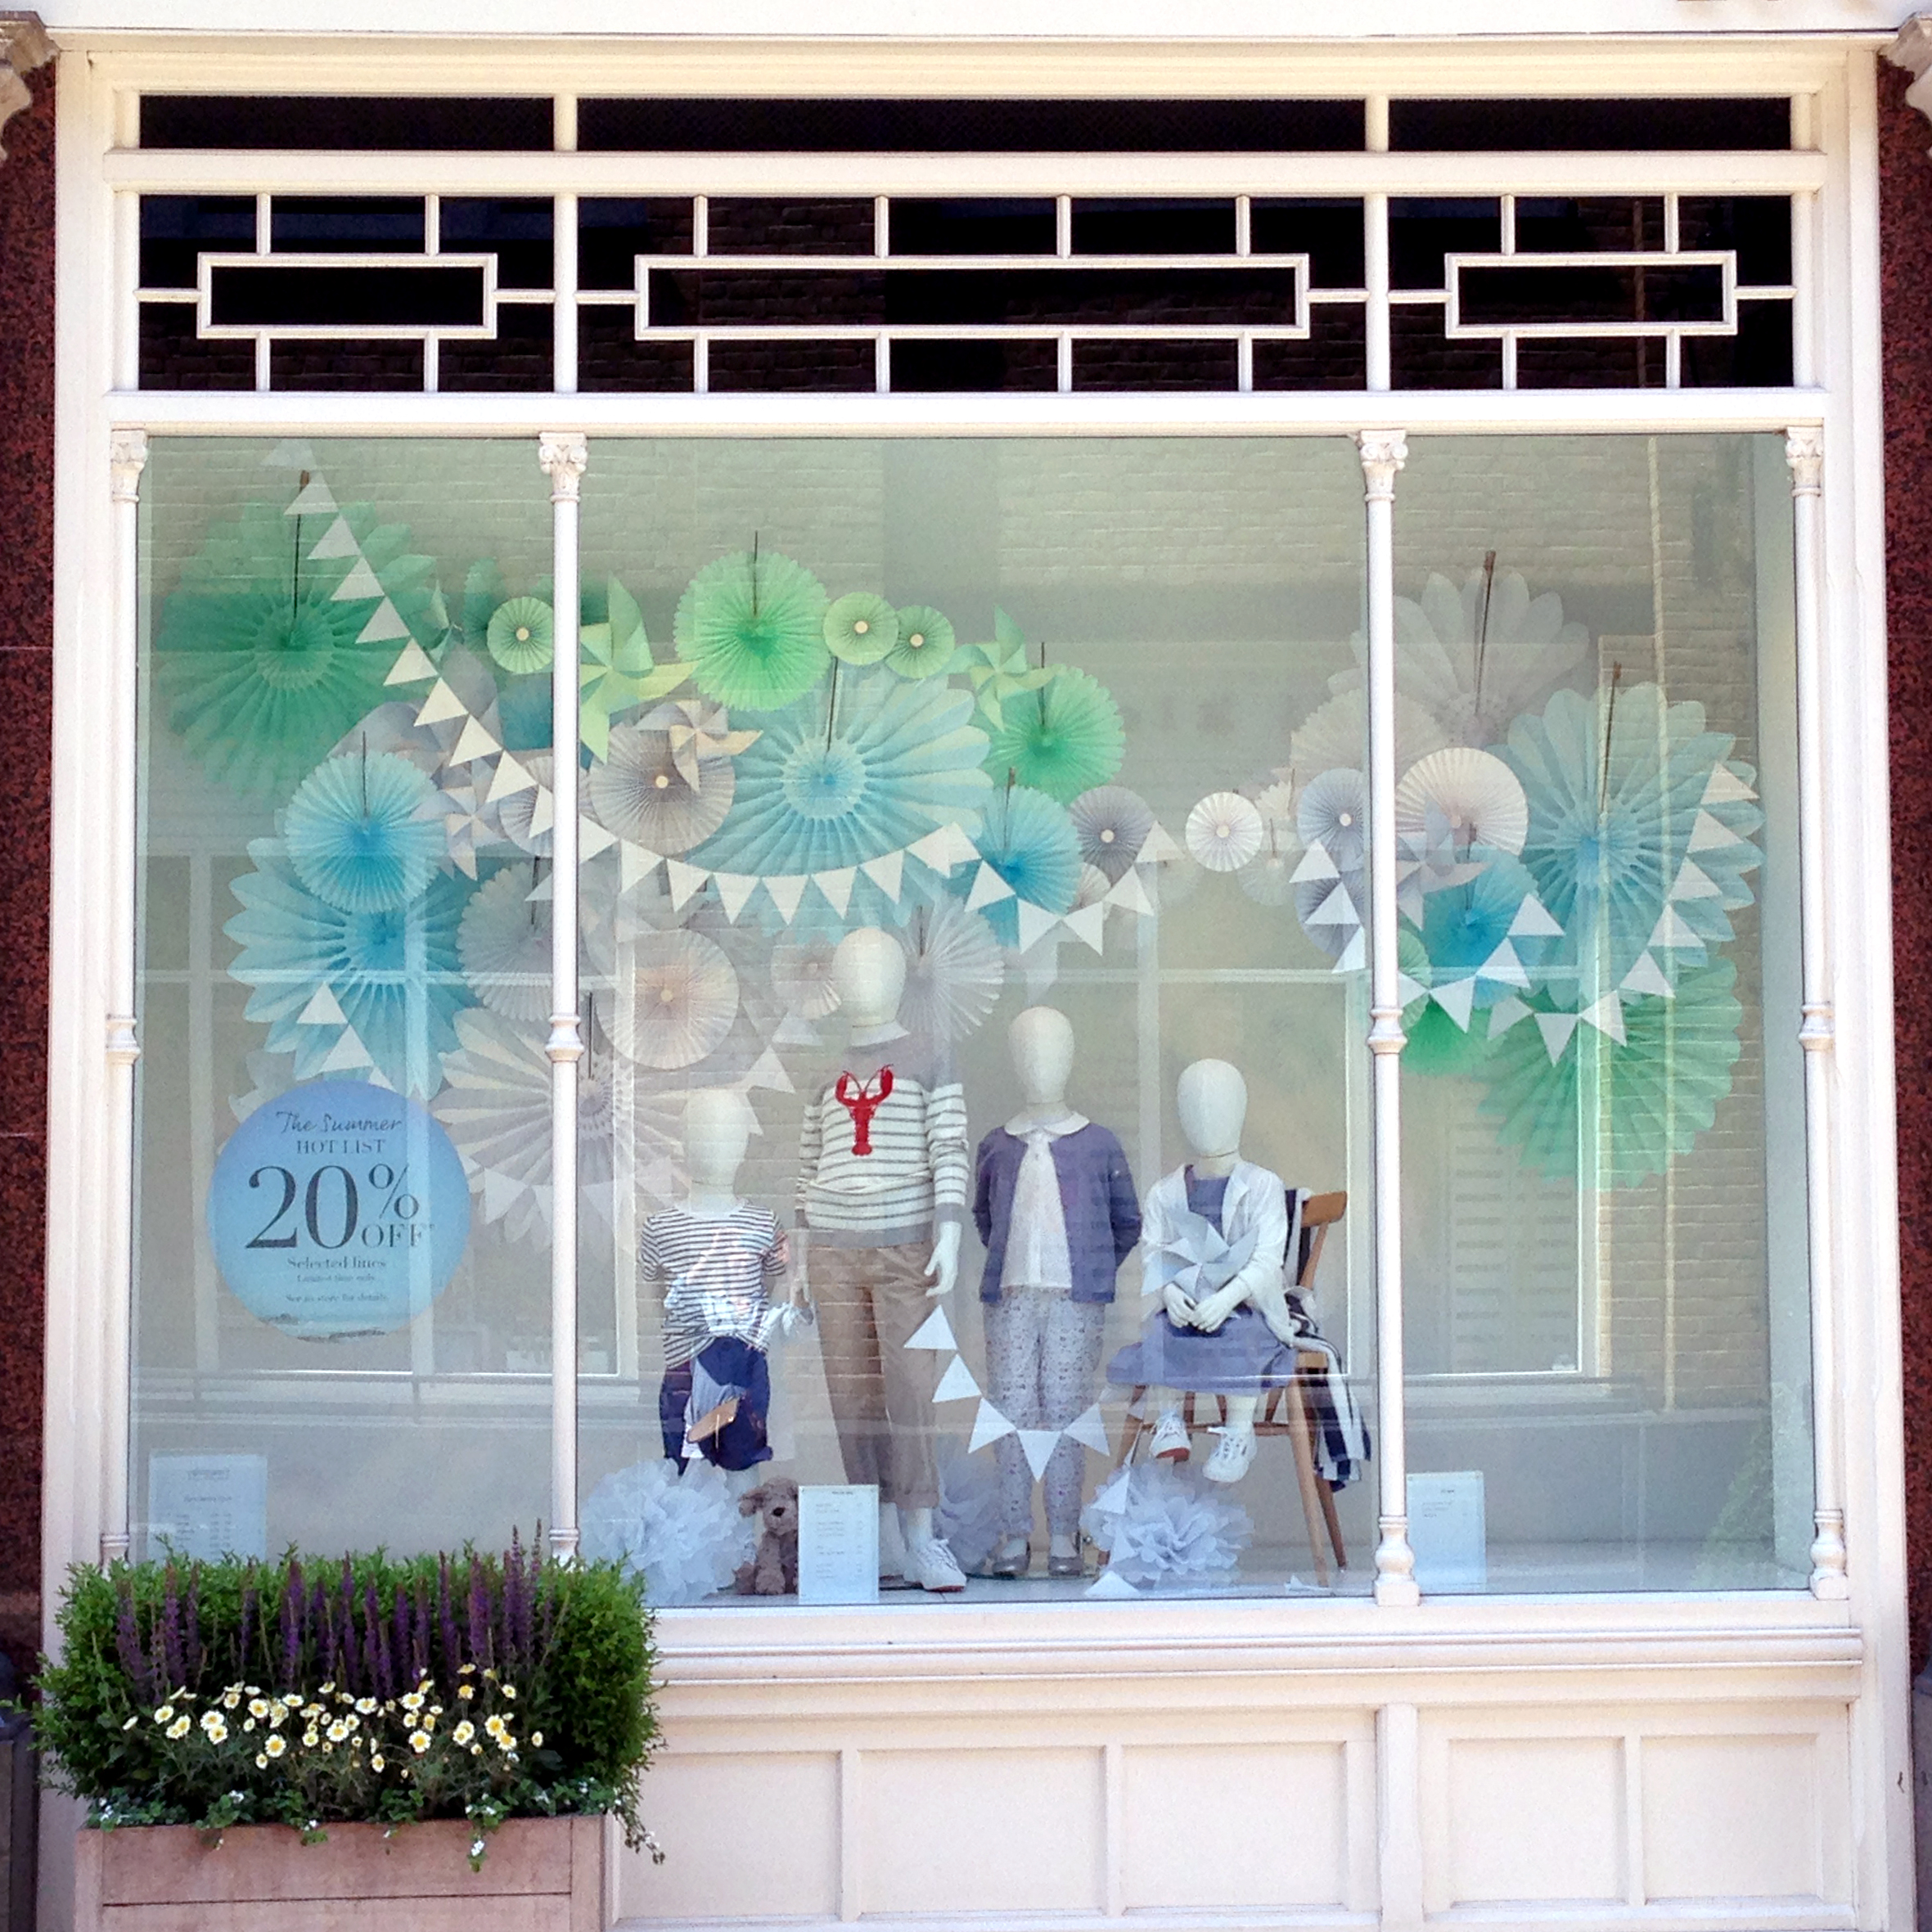 paper-bunting-and-fan-decorations-in-retail-window-display.jpg